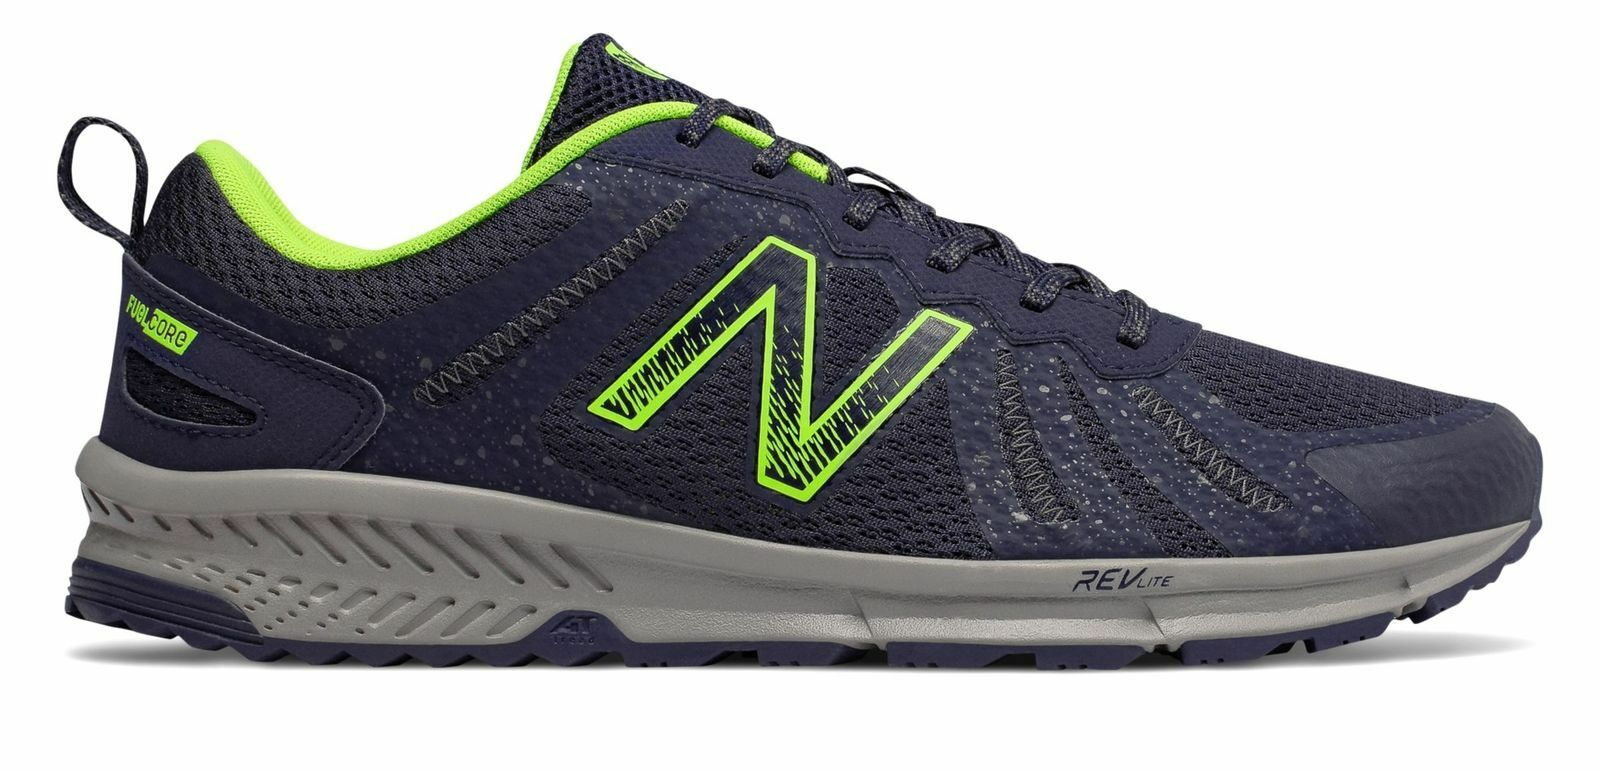 Nouveau T 11 4E (Xwide) New Balance 590 v4 Homme Trail Running Baskets Chaussures